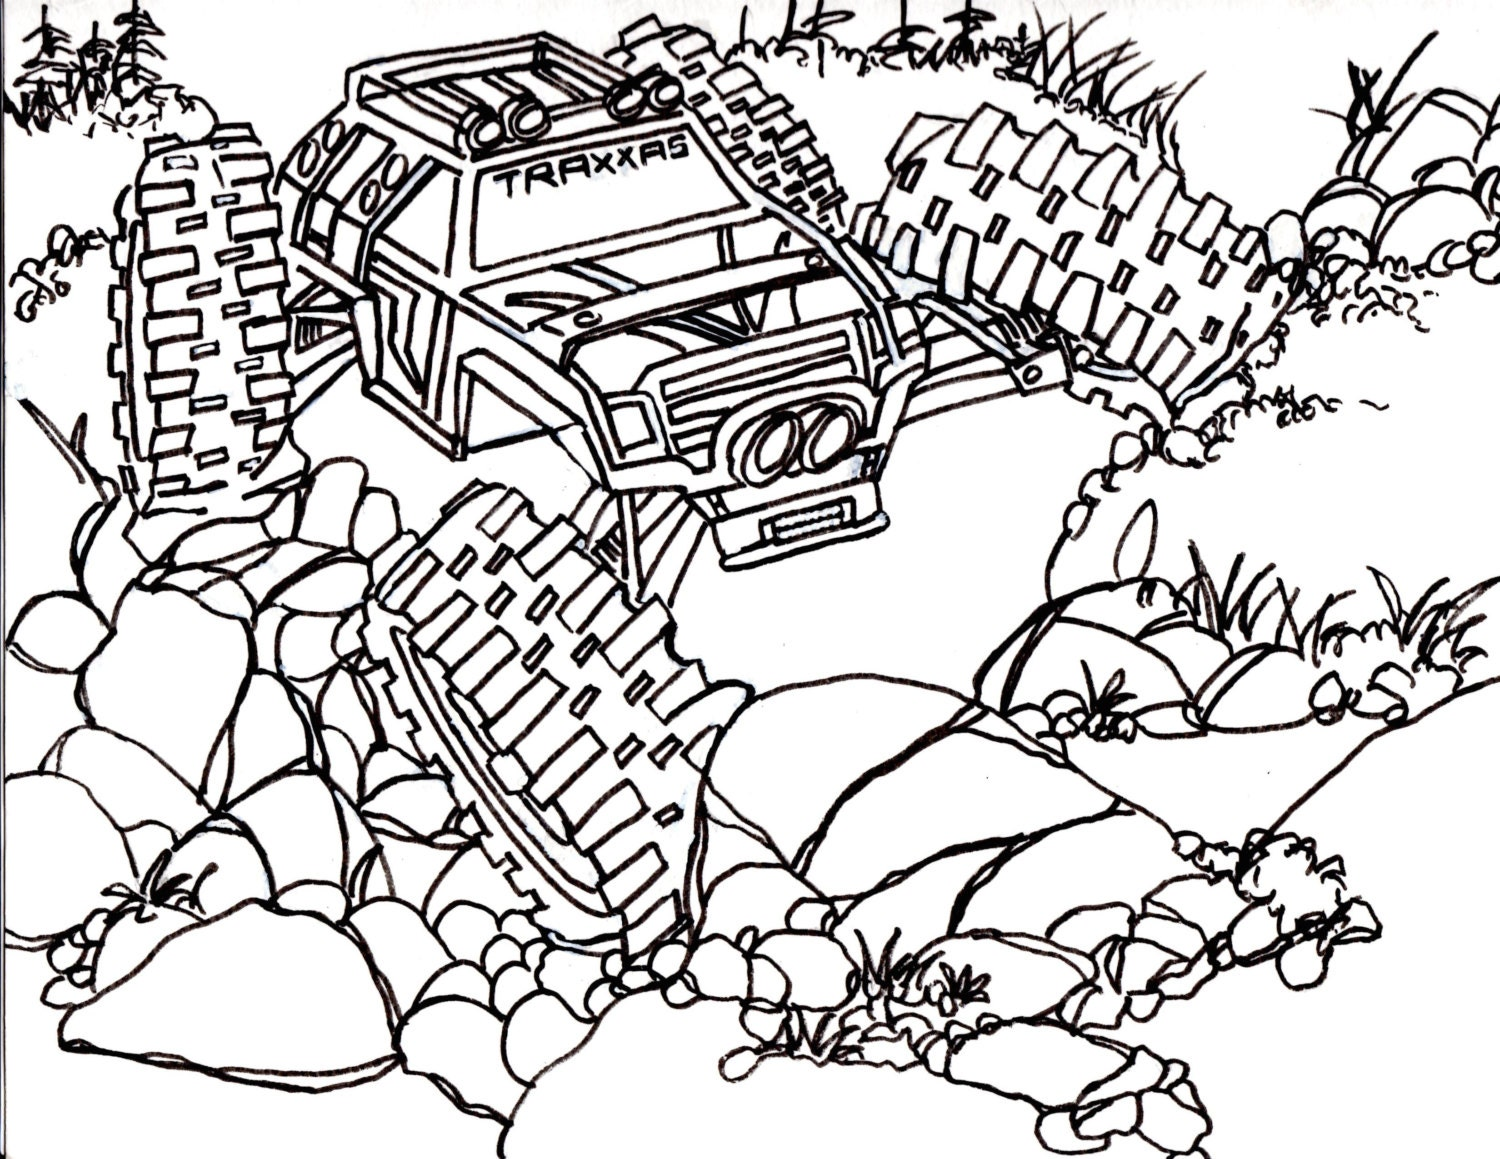 Coloring Pages Of Rc Cars : 5 Traxxas Summit Coloring Pages Drawing Truck 4x4 RC